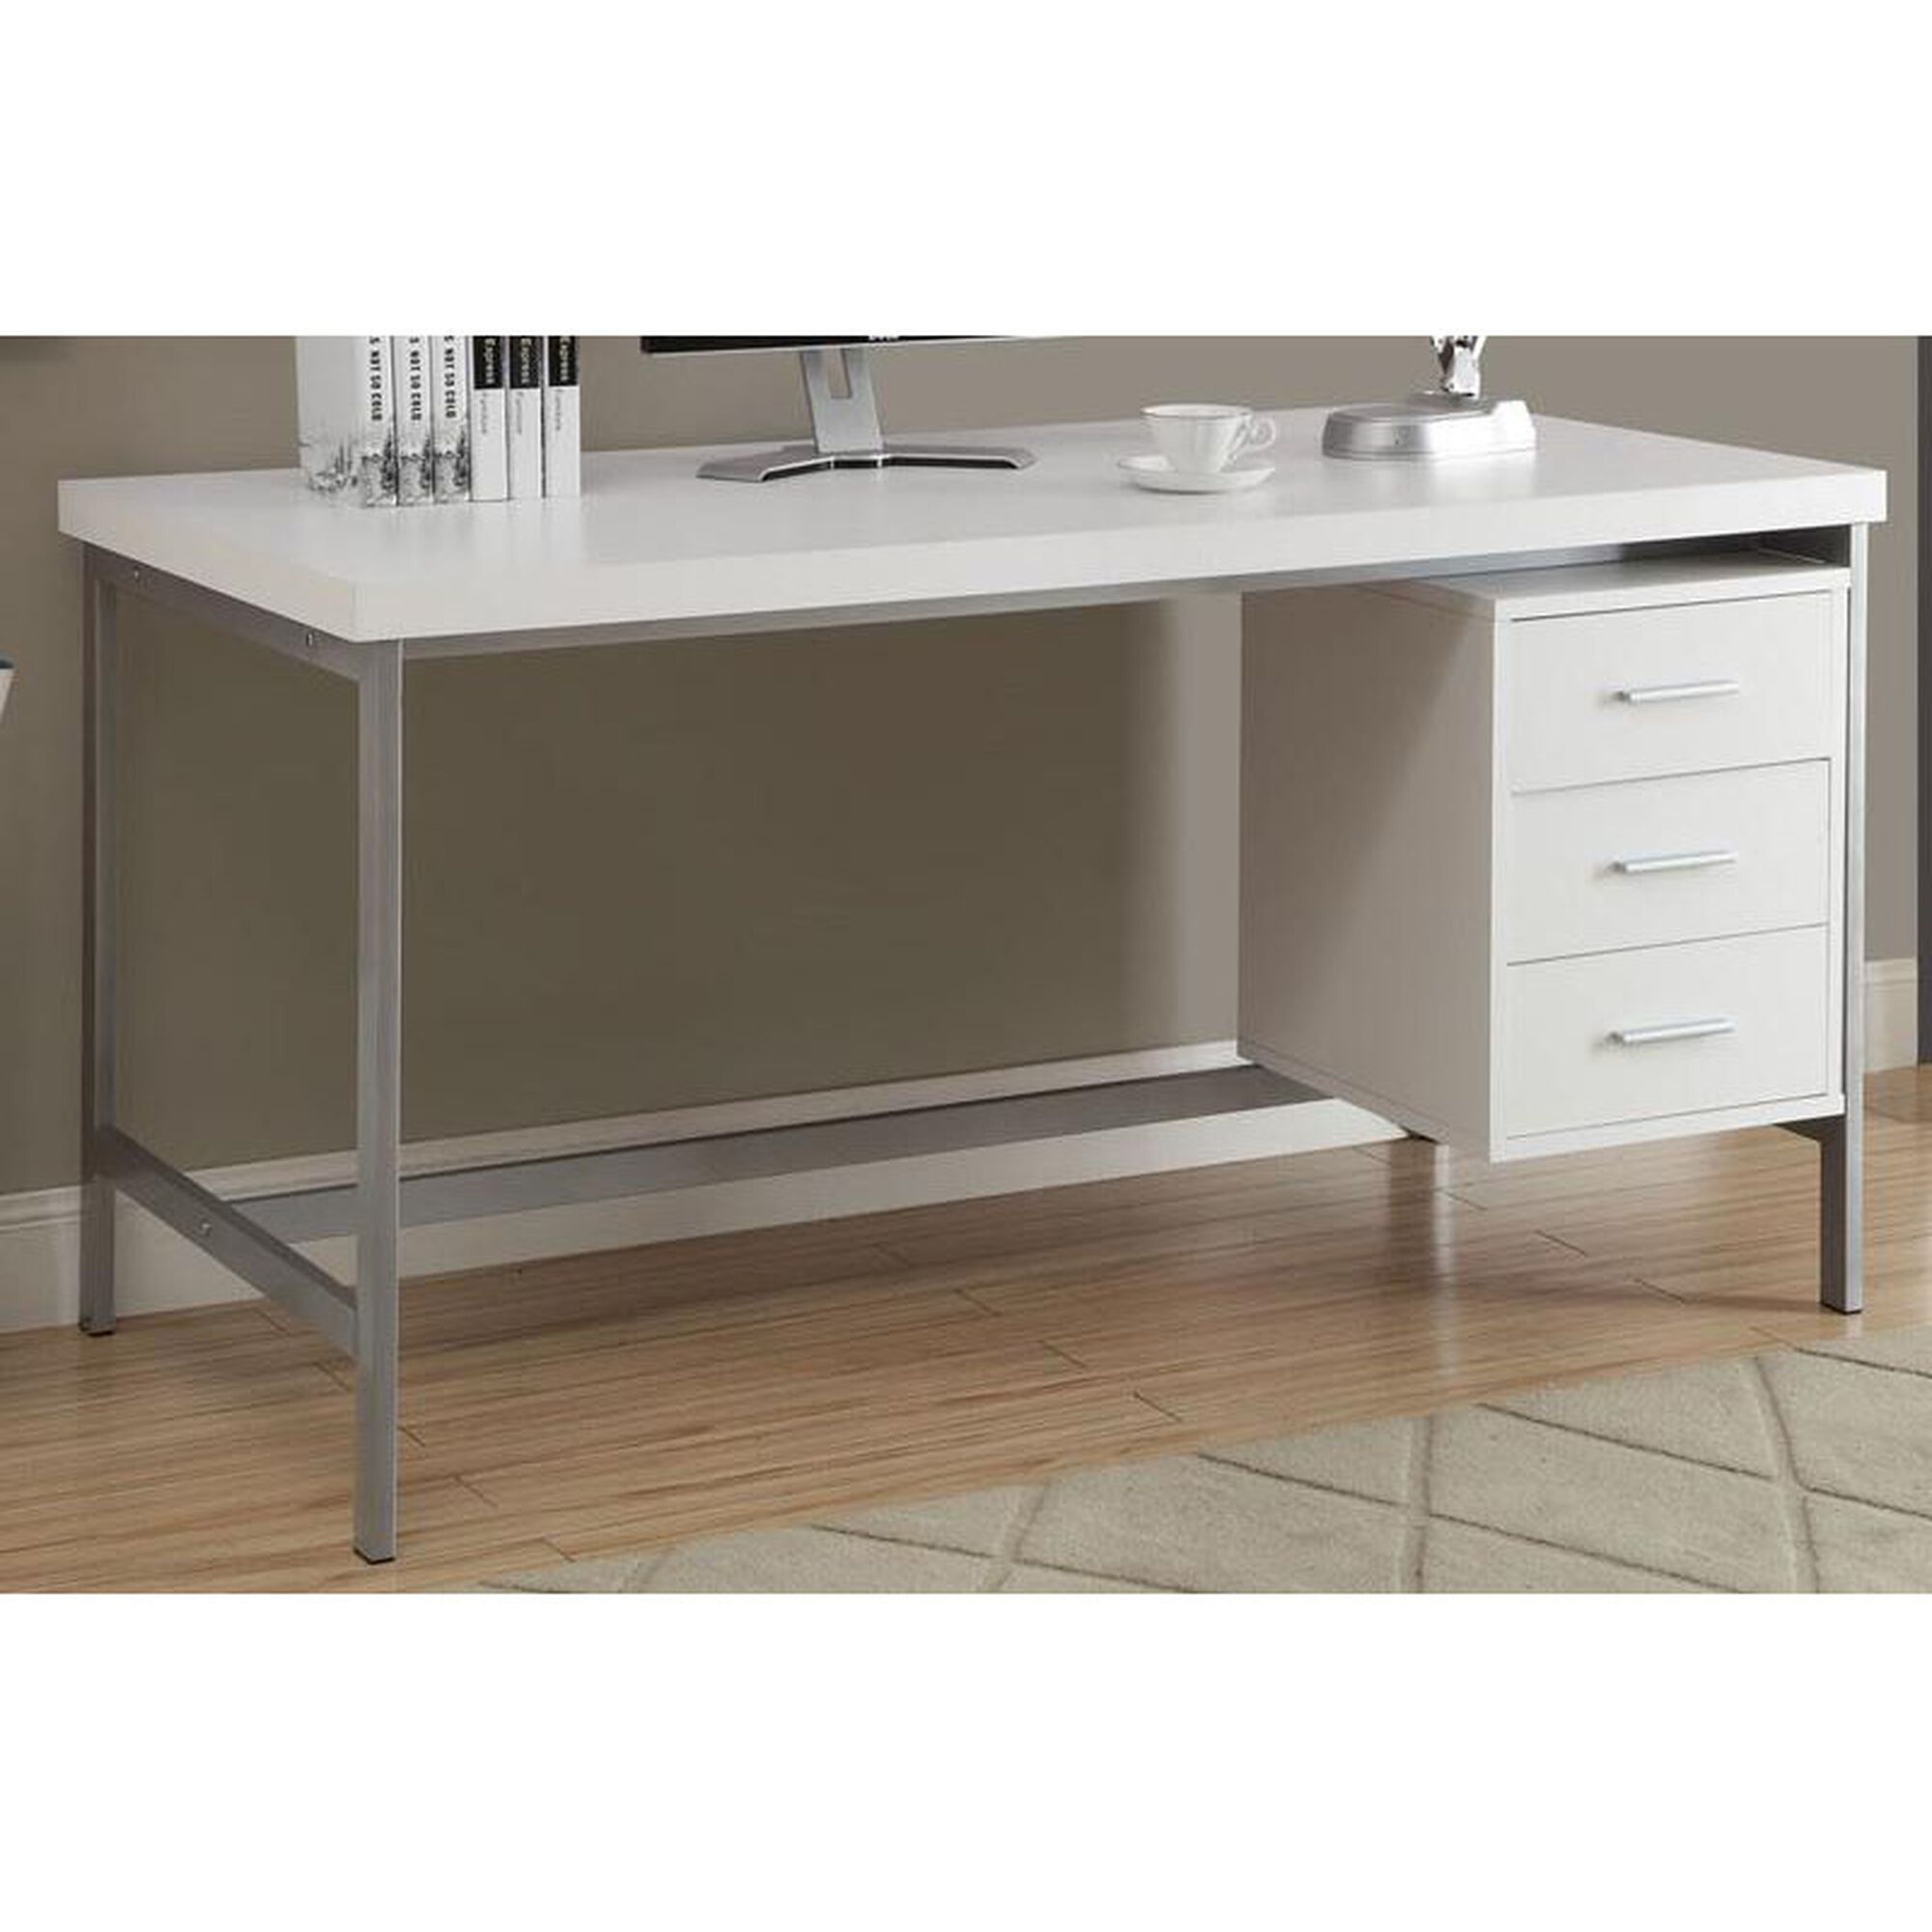 Traditional 60\'\'W Home Office Desk with Three Drawers - White